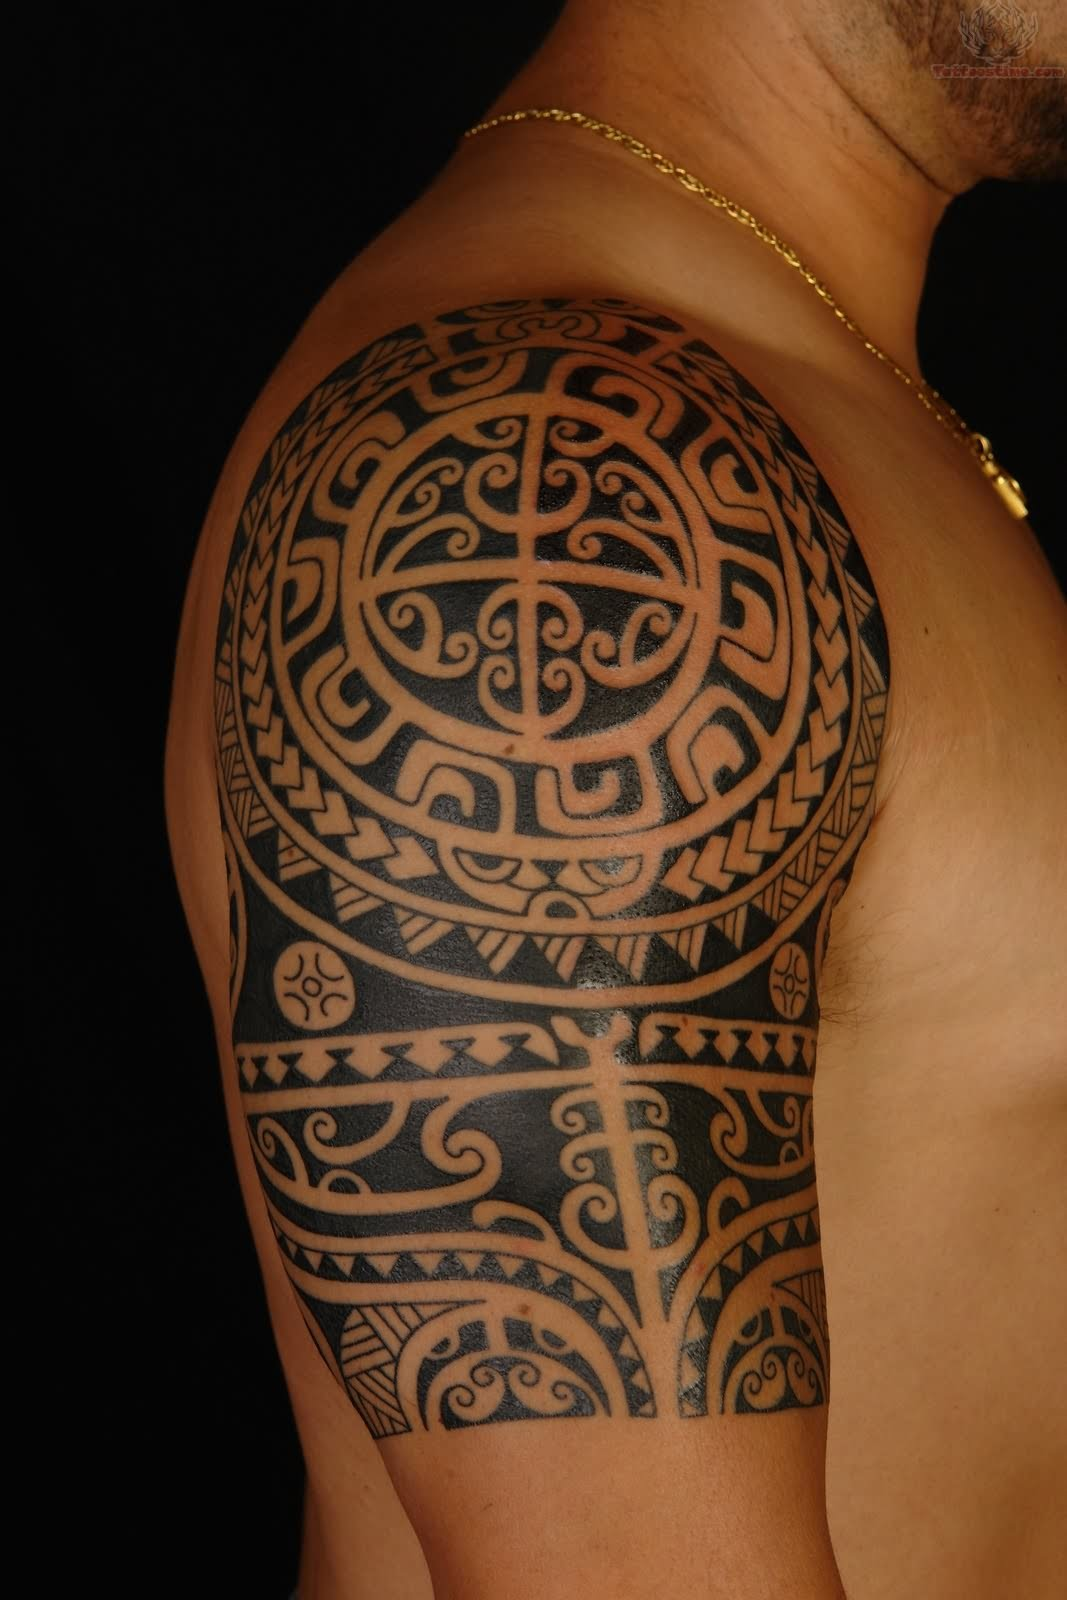 Coolest Triabl Hawaiian Tattoo Design On Men Right Shoulder